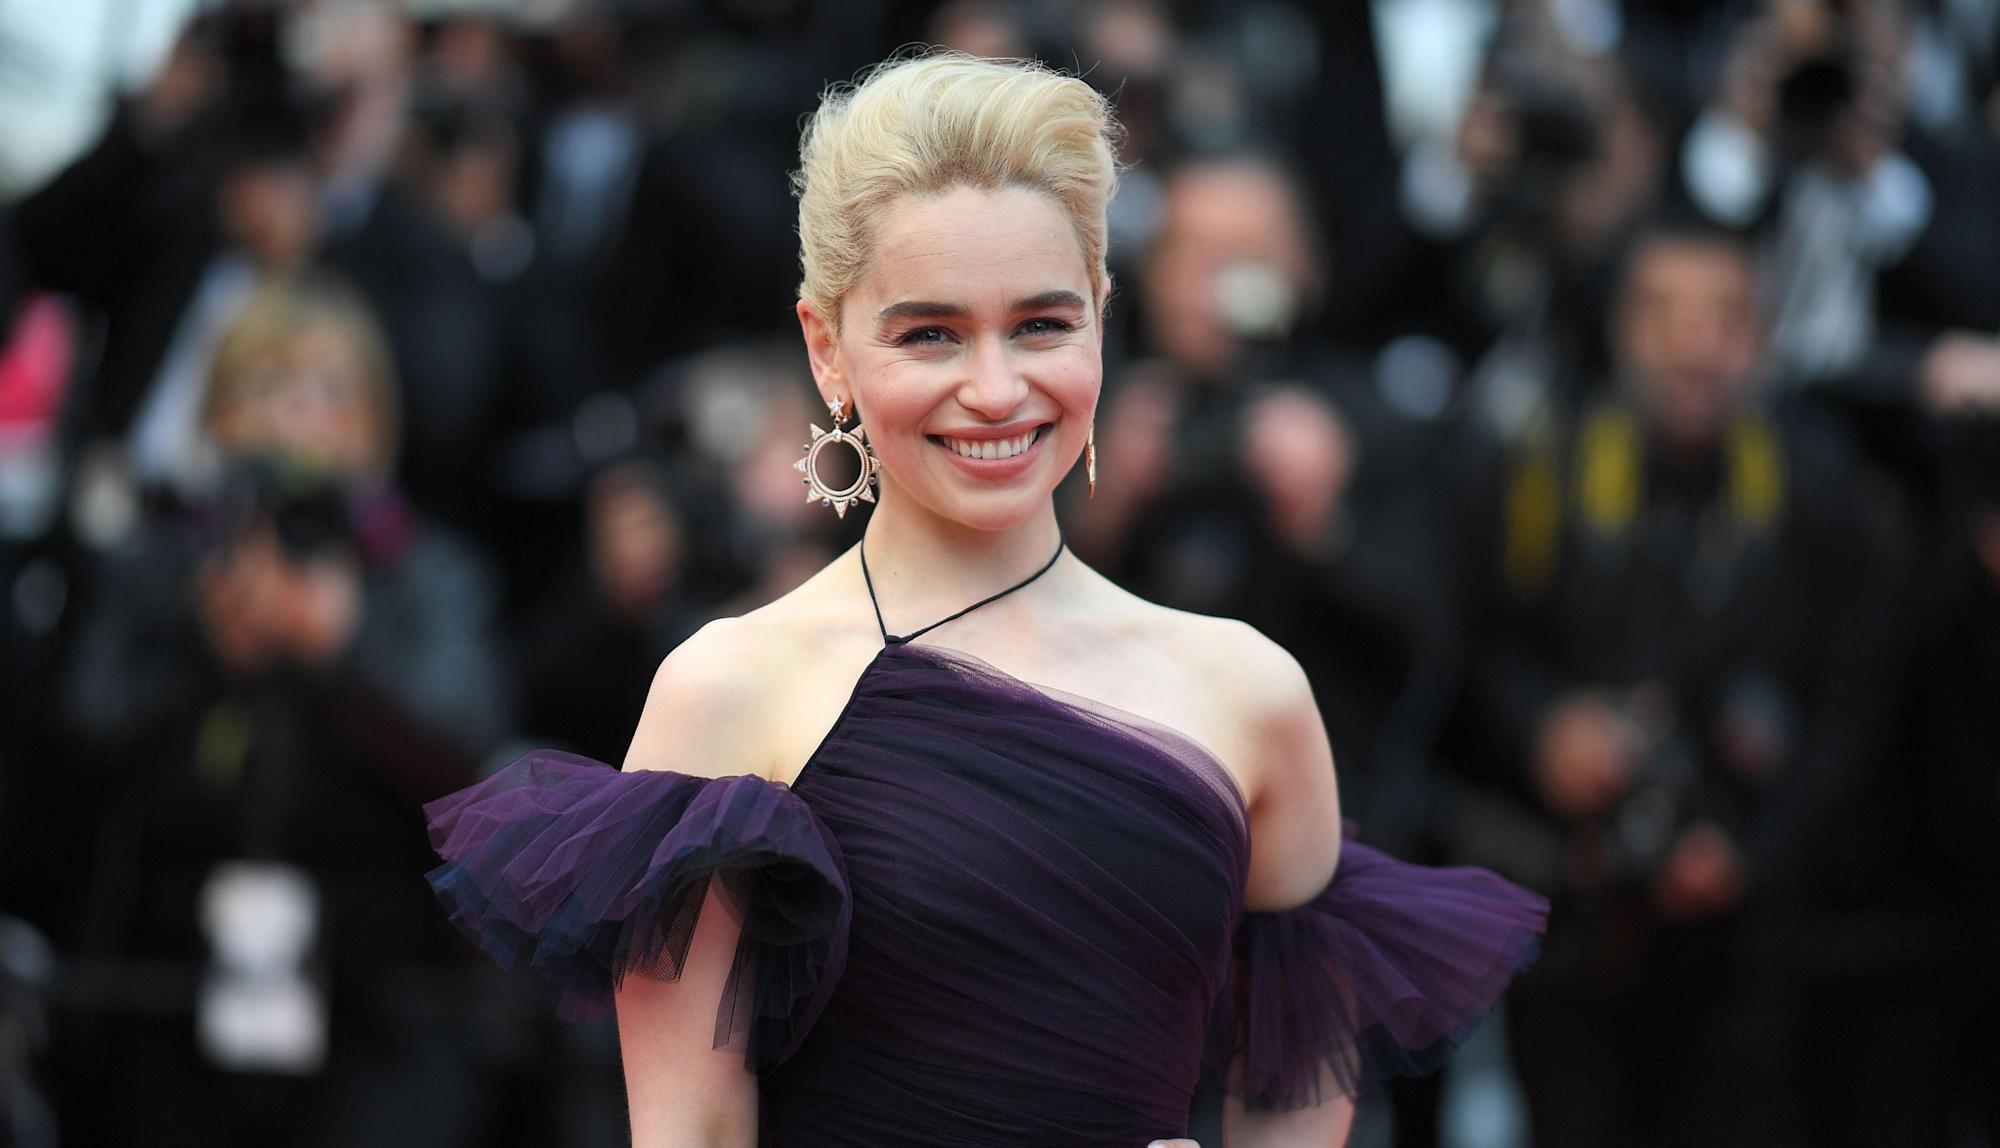 As If the Sex Scenes Werent Awkward Enough, Emilia Clarke